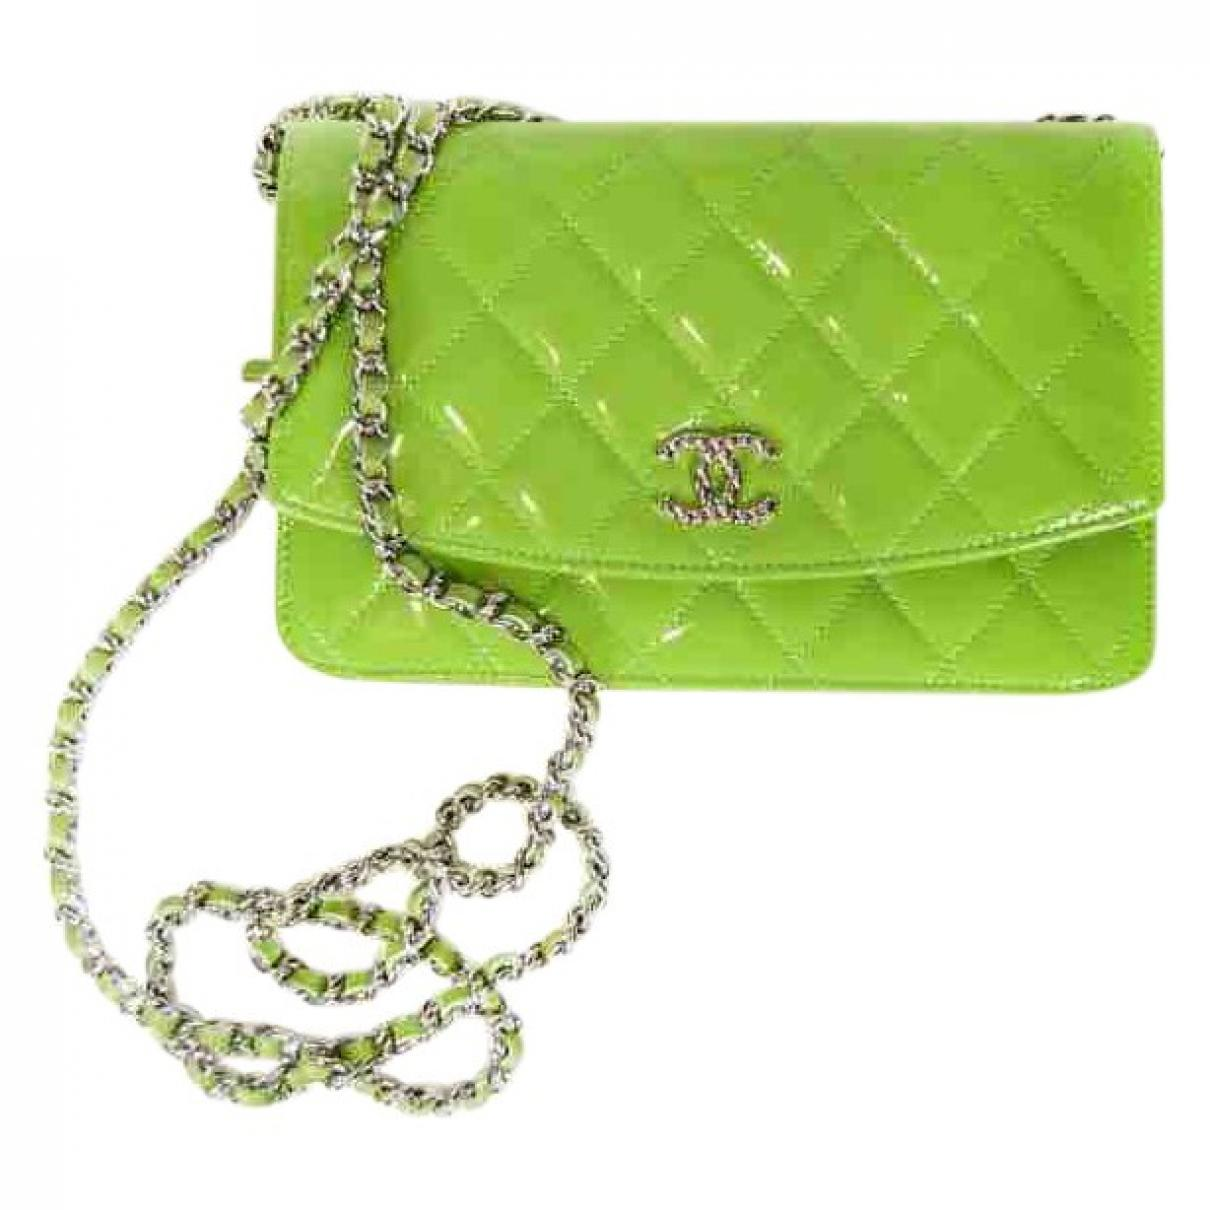 463061e7c662 Lyst - Chanel Wallet On Chain Patent Leather Bag in Green